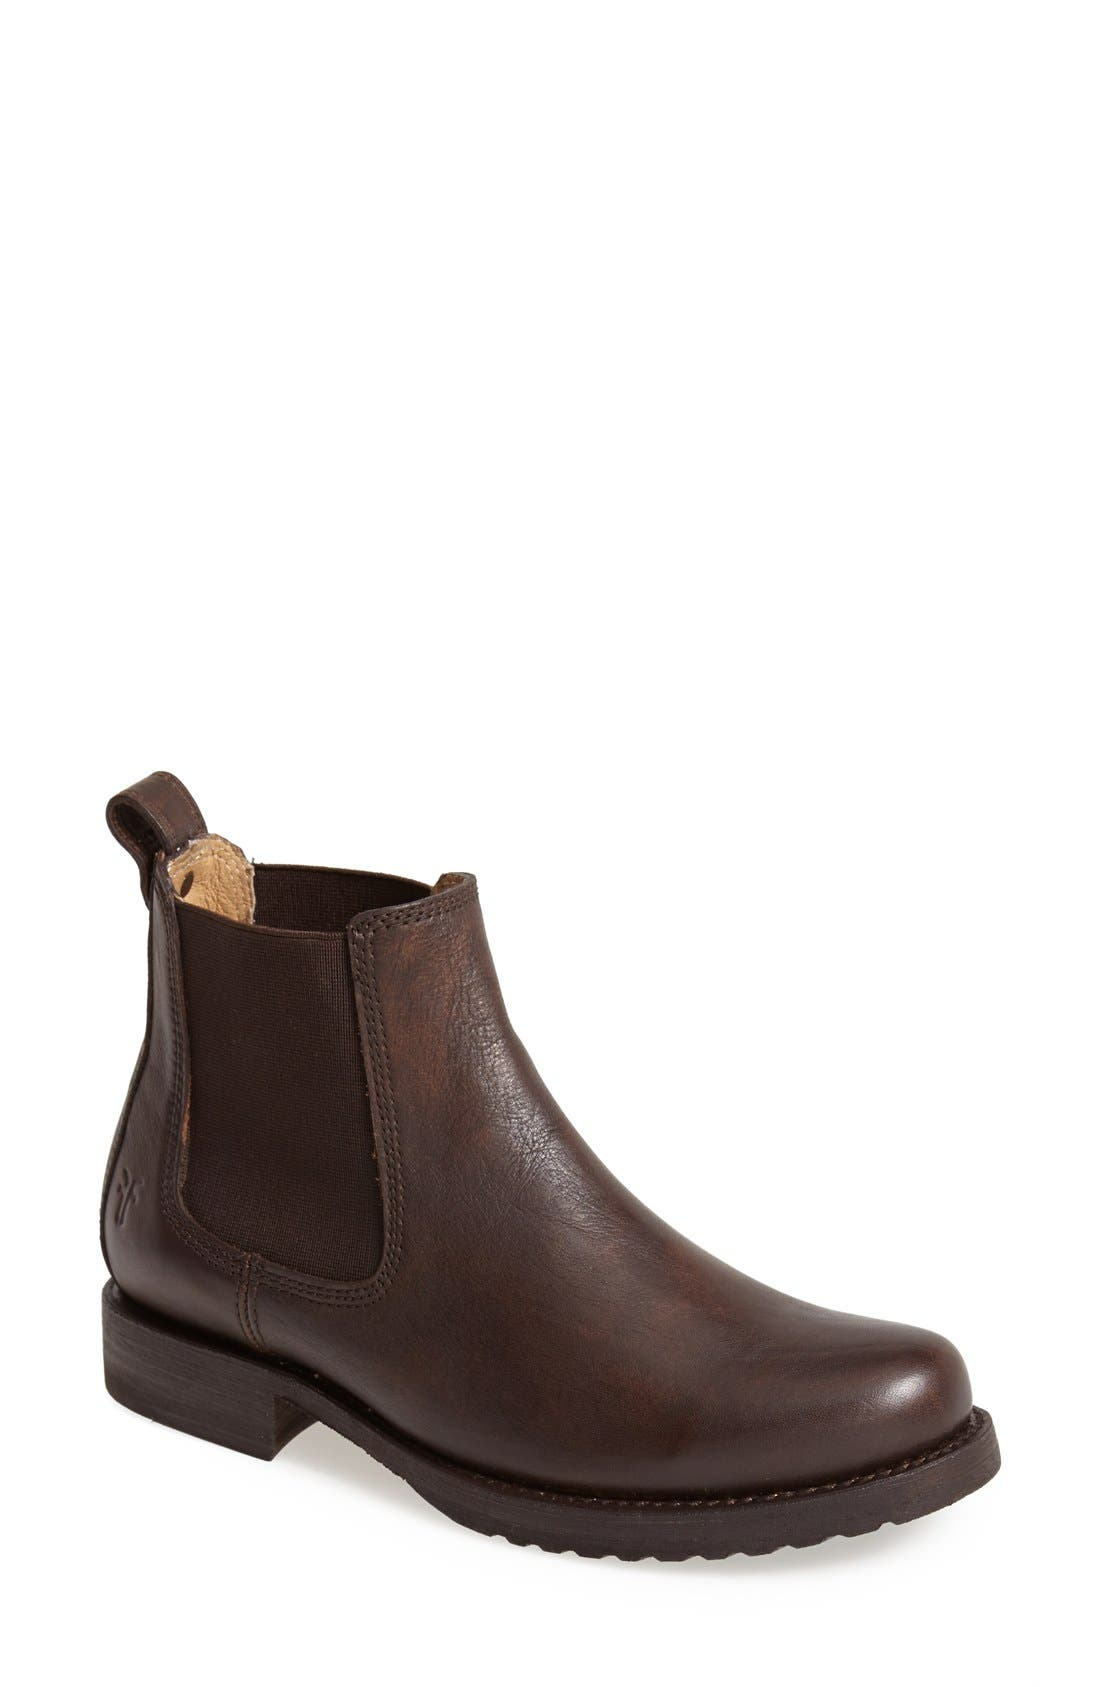 Alternate Image 1 Selected - Frye 'Veronica' Leather Chelsea Bootie (Women)